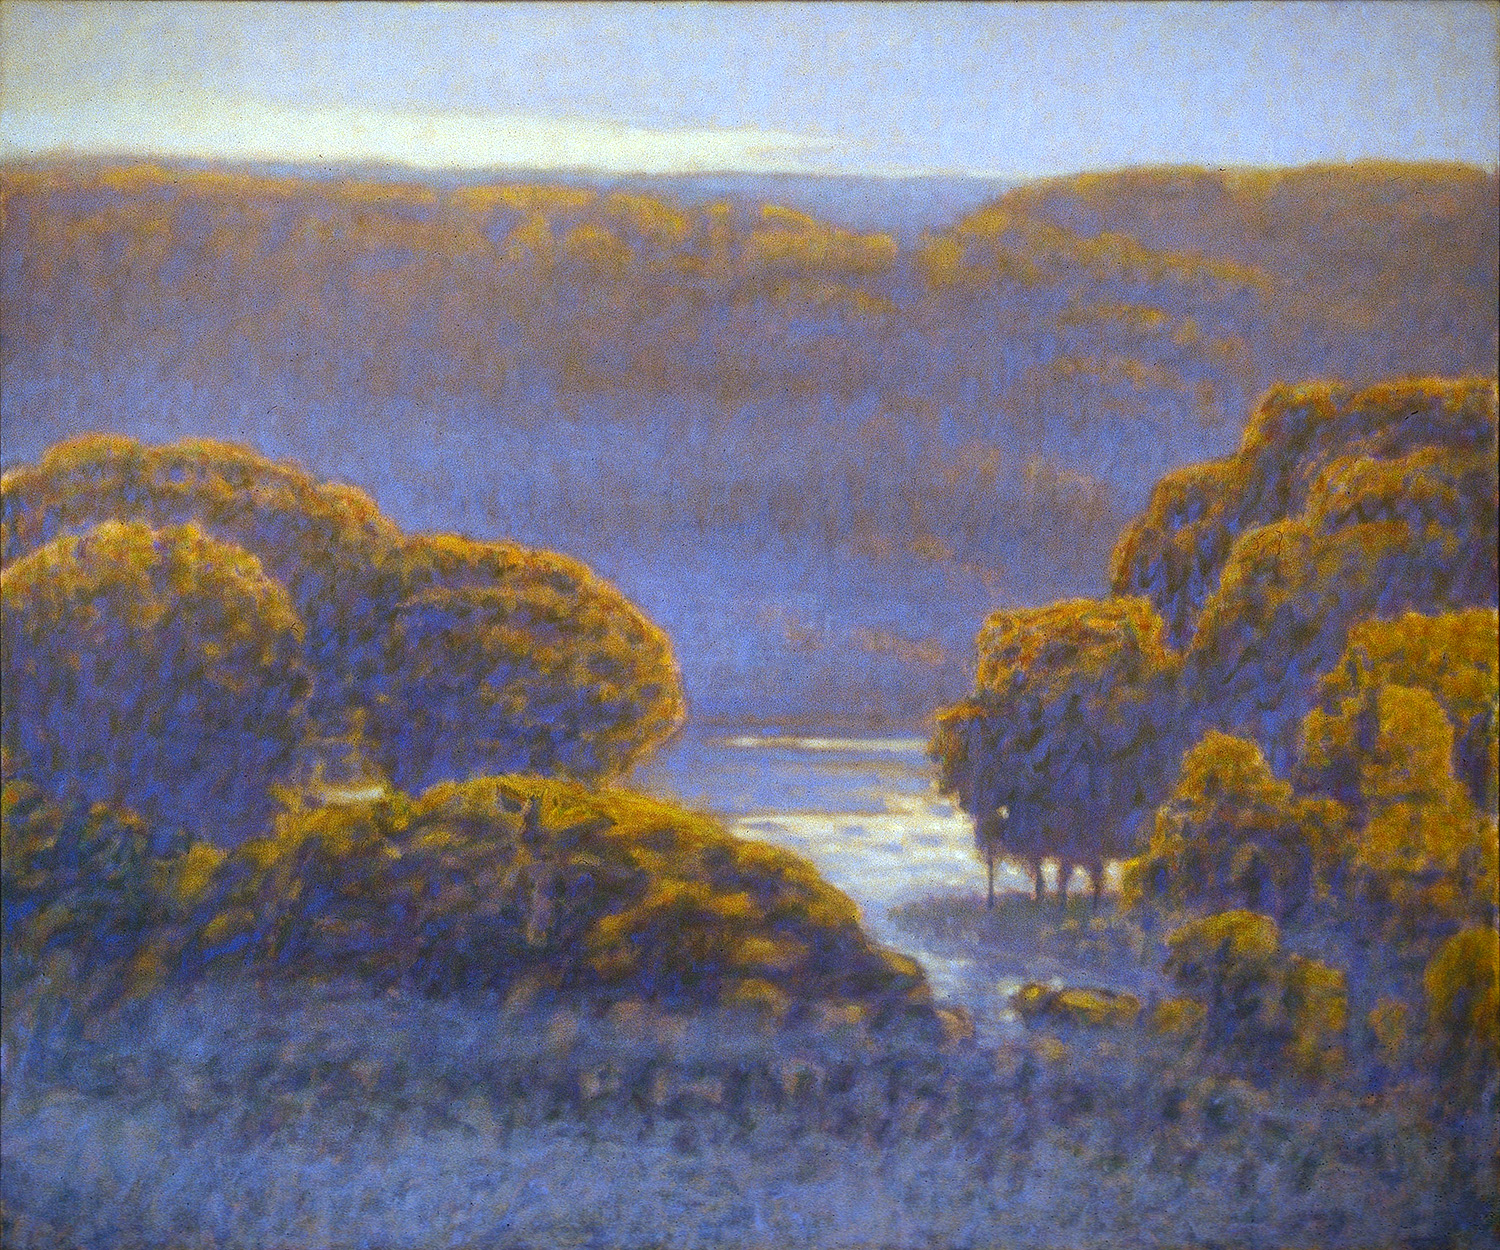 Manistee River Valley   | oil on canvas | 60 x 72"